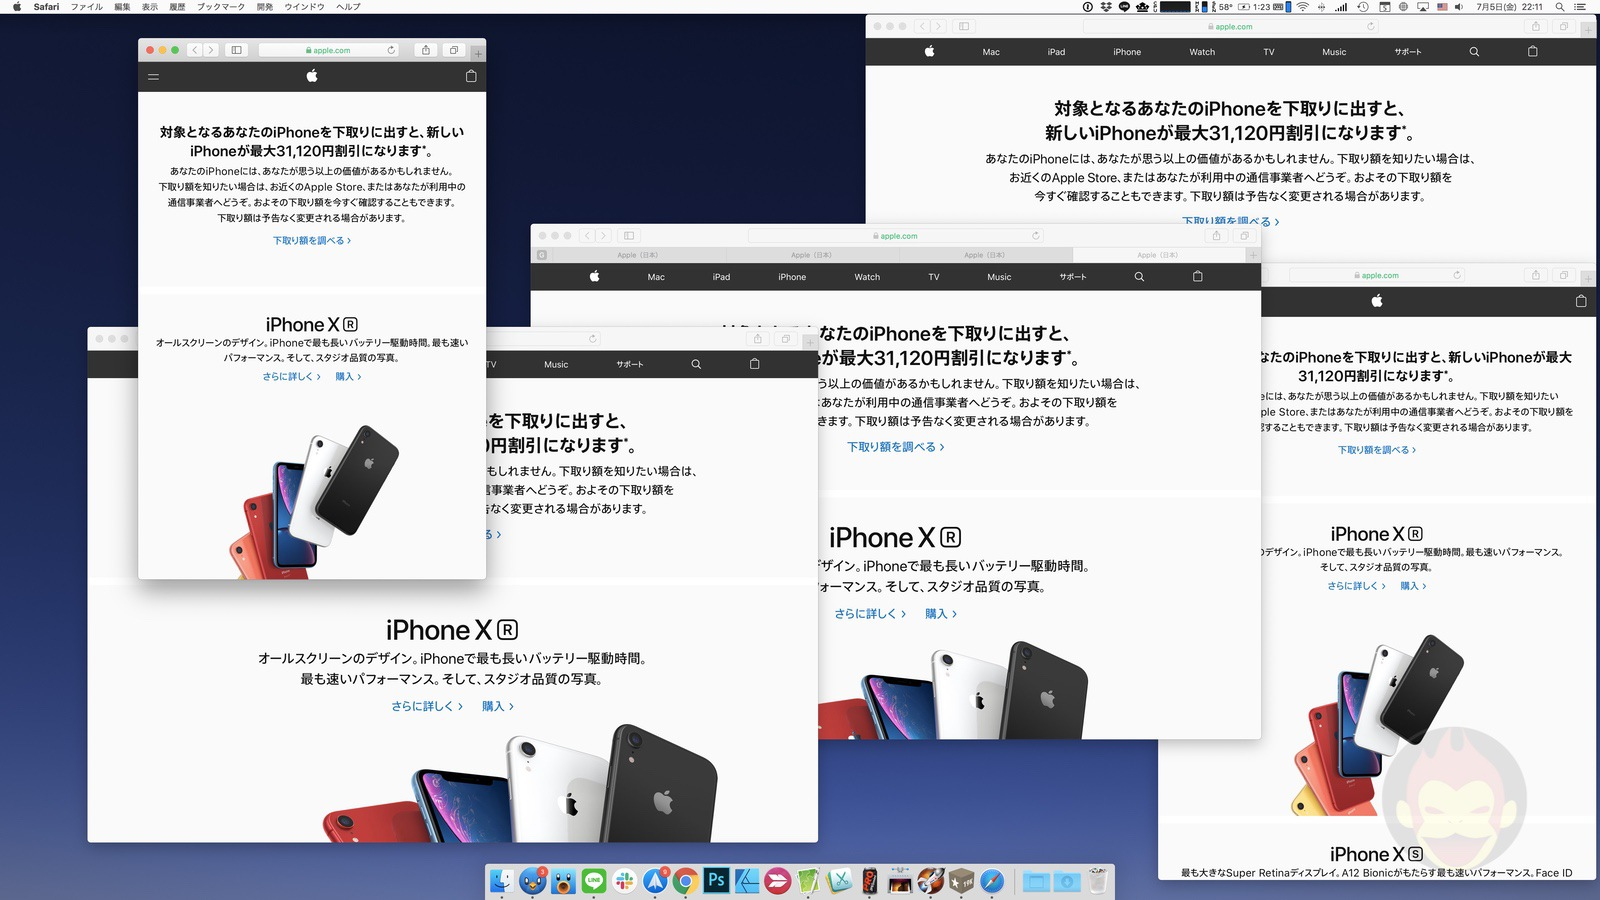 Merging all Safari Windows into One 03